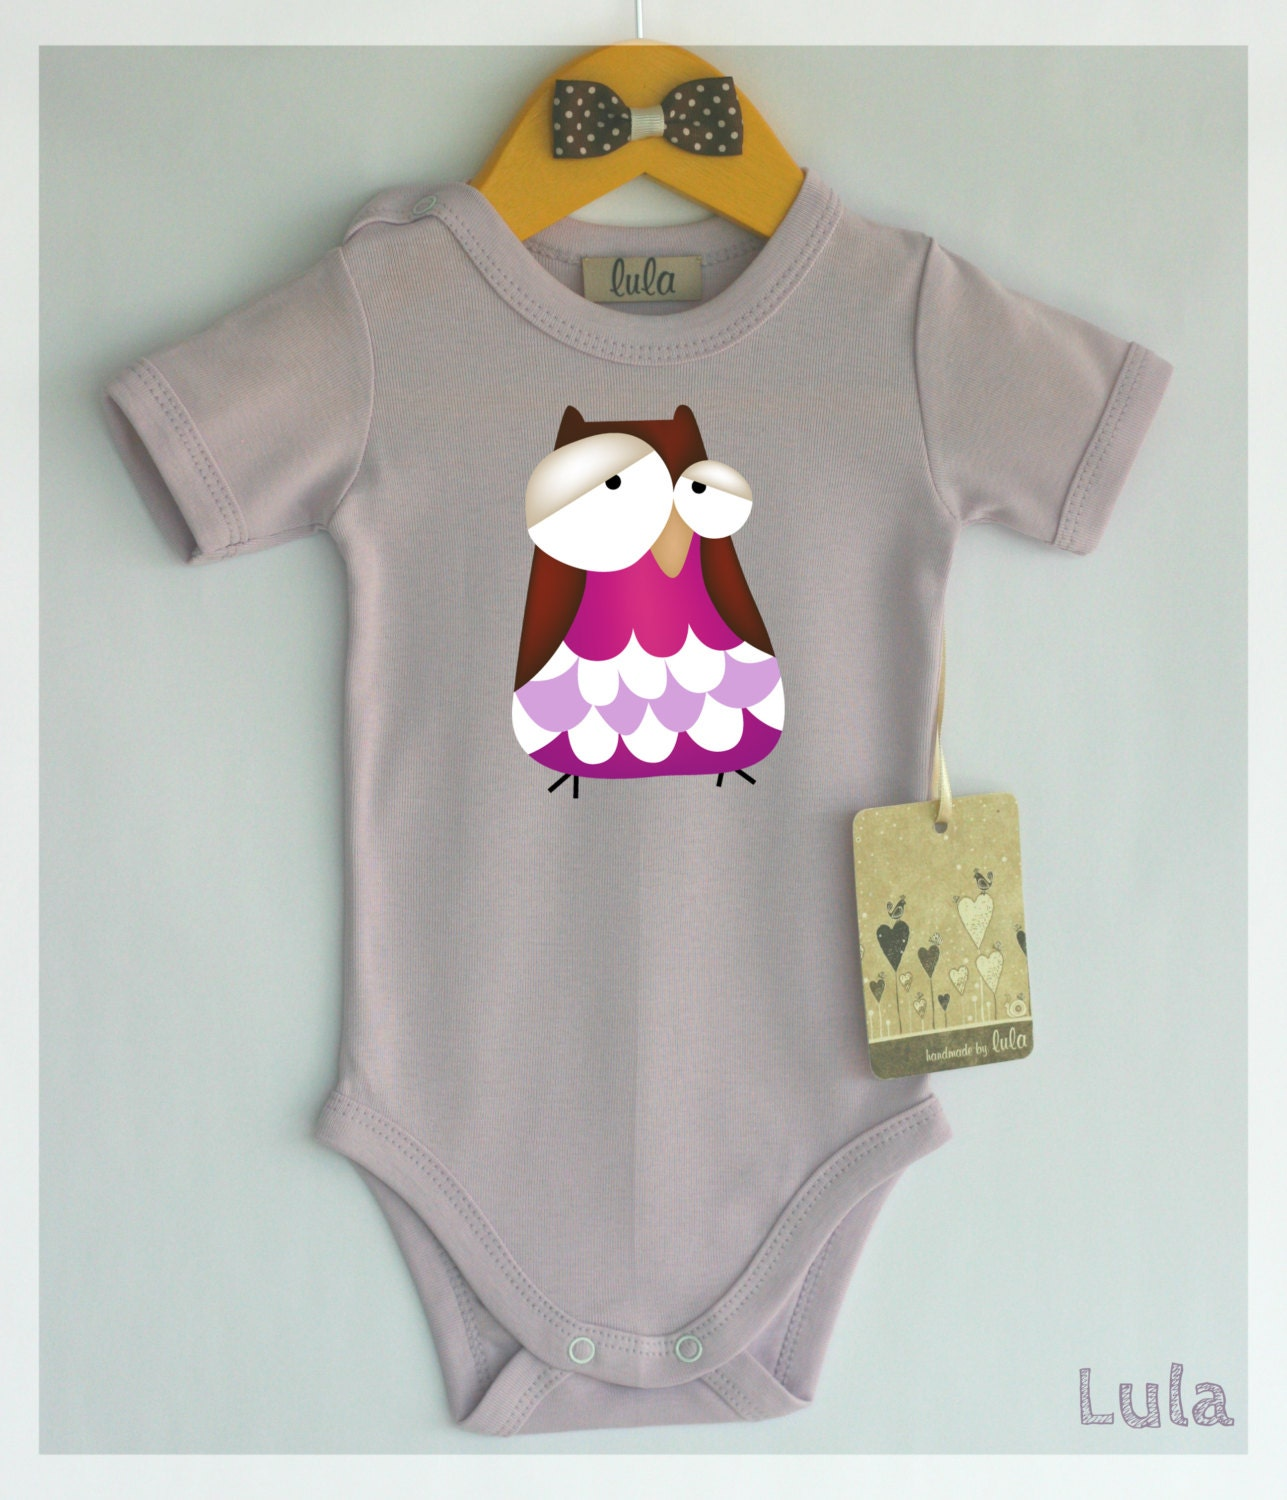 Shop for Owl Baby Clothes & Accessories products from baby hats and blankets to baby bodysuits and t-shirts. We have the perfect gift for every newborn.